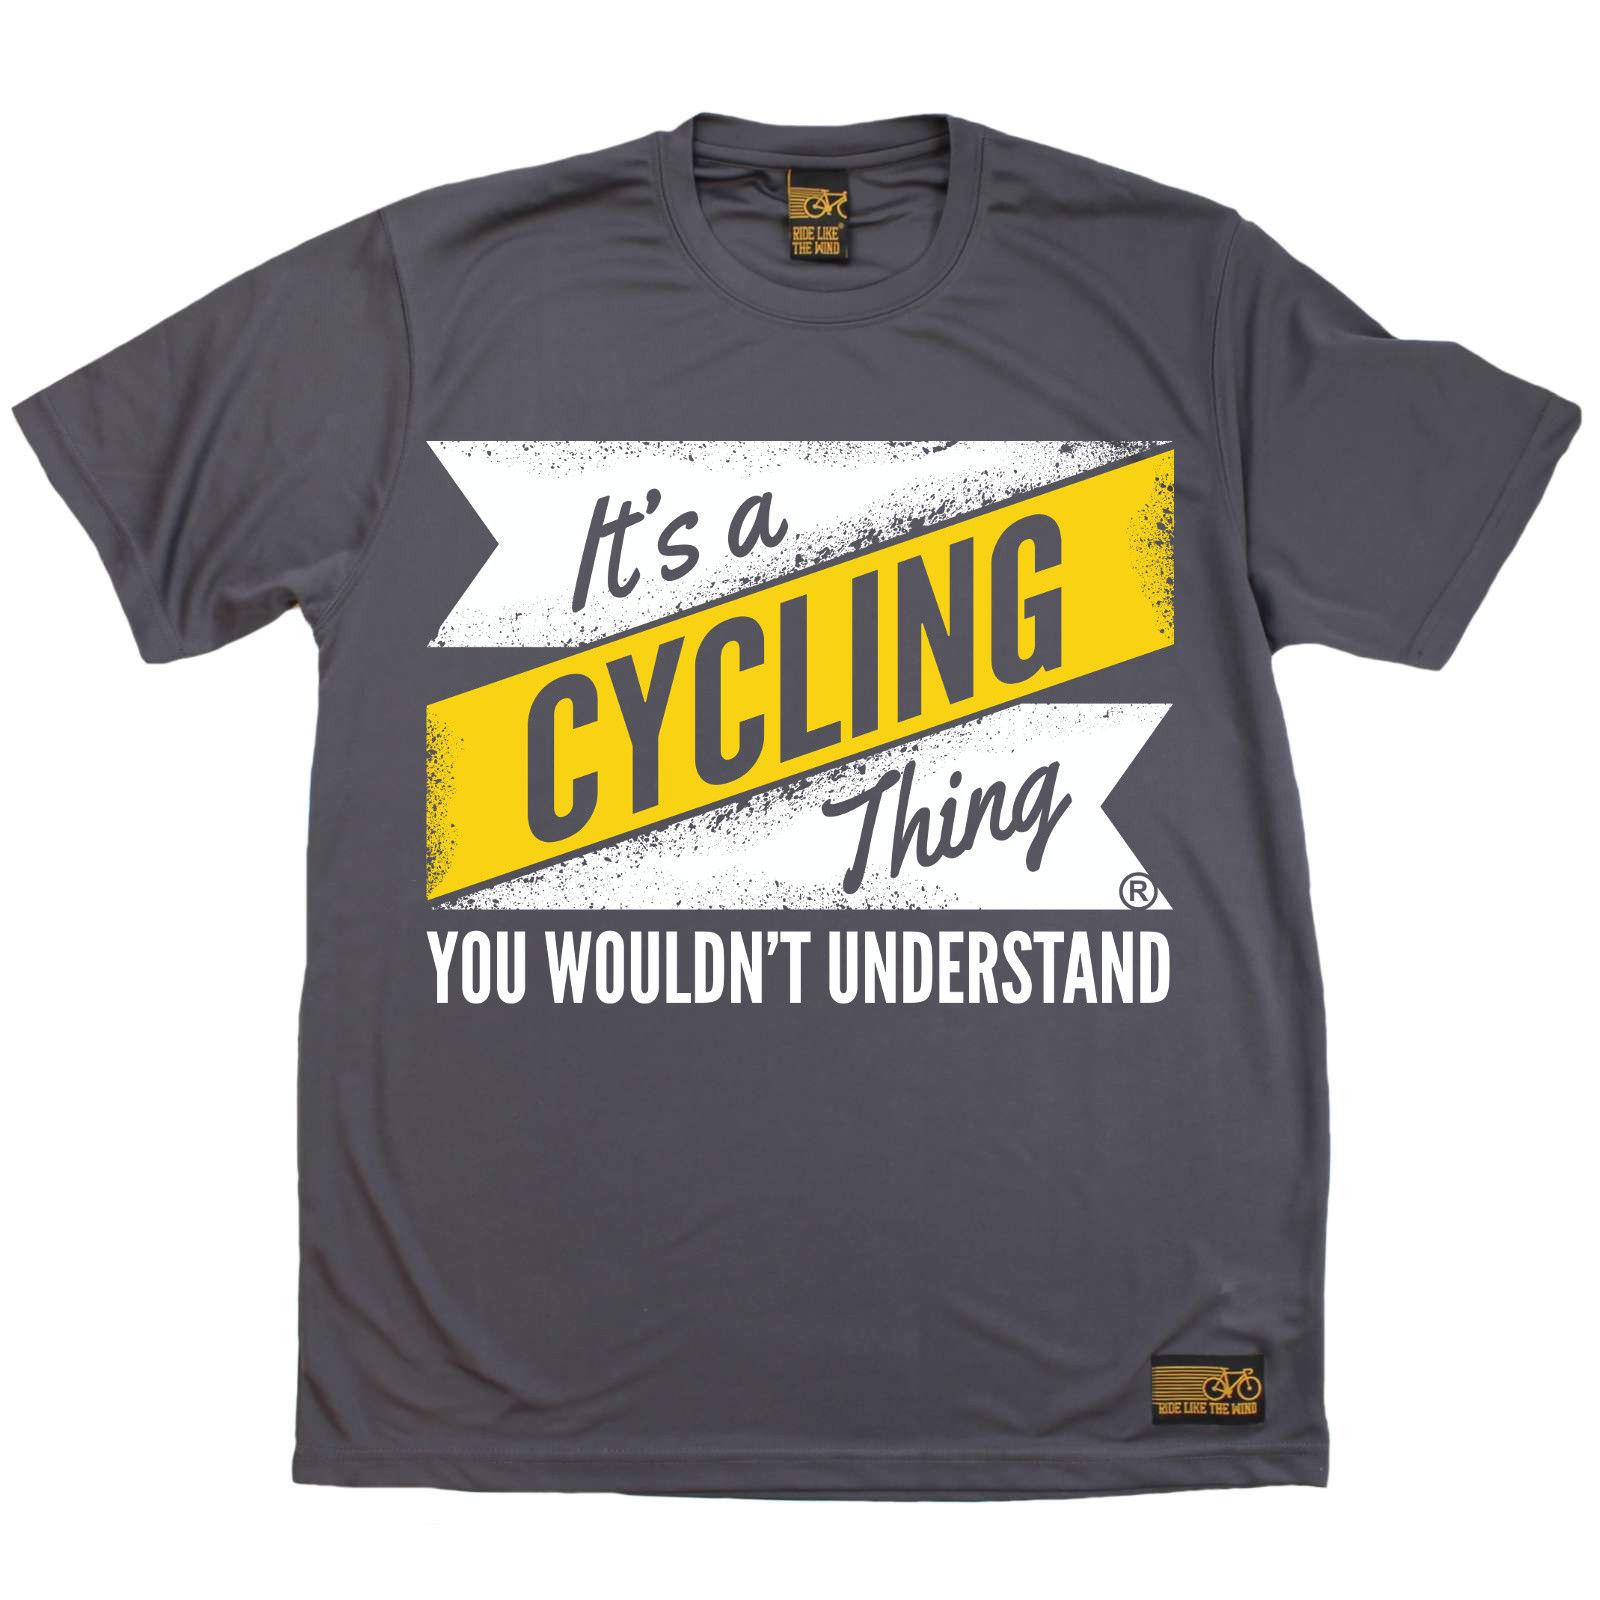 7f2940d099a9 Cycling Its A Cycling Thing Breathable Top T SHIRT DRY FIT T SHIRT Ringer T  Shirts Political T Shirts From Idesignz